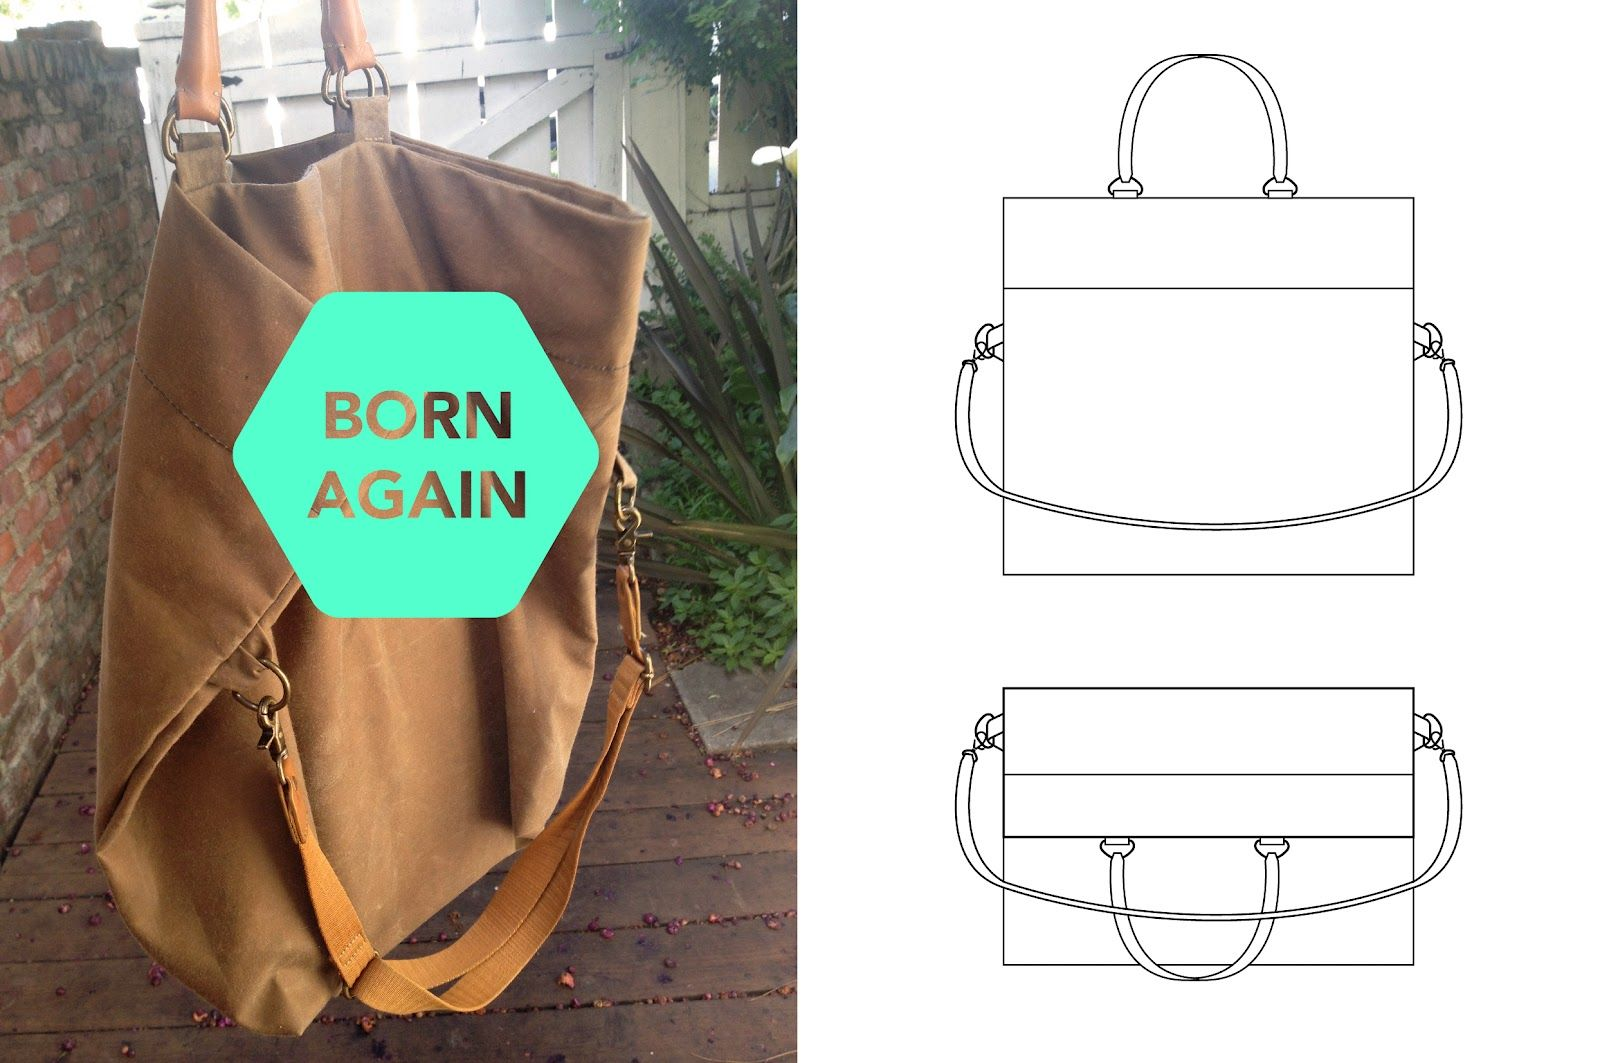 Eighteenth Century Agrarian Business: Tote Re-Do